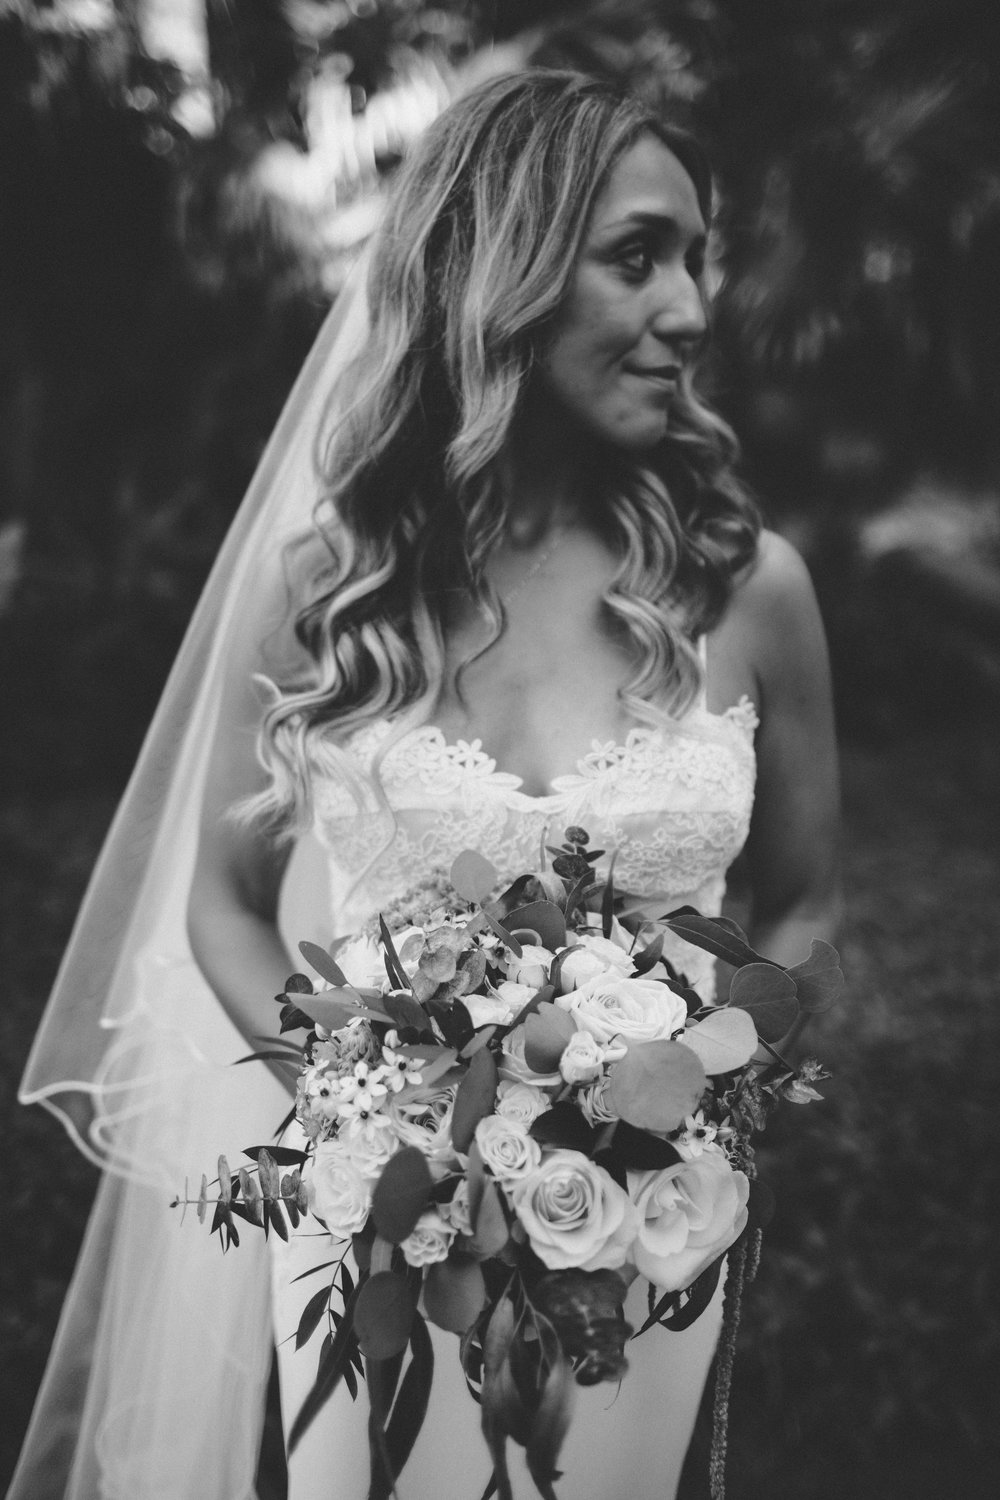 mexico_wedding_cancun_villa_la_joya_evangeline_lane_108a.jpg